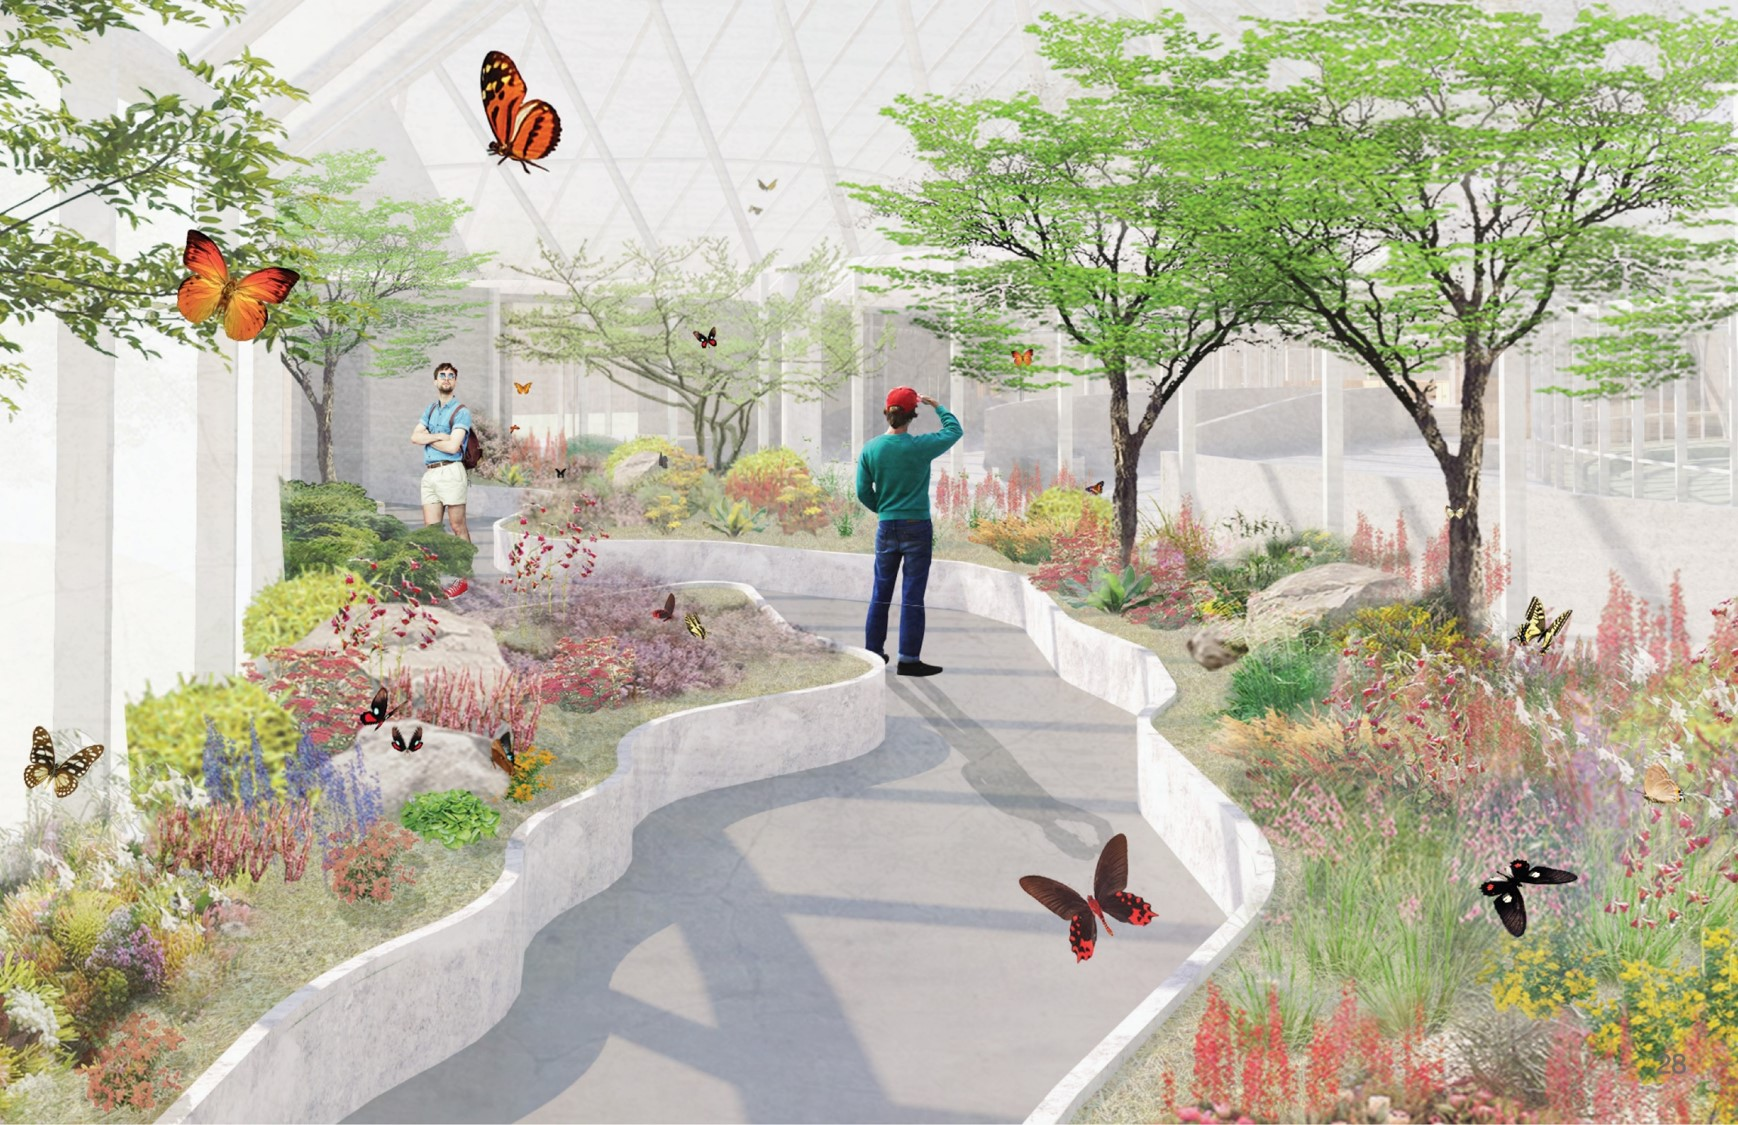 Botanical Gardens Plans First Large Scale Expansion In Over A